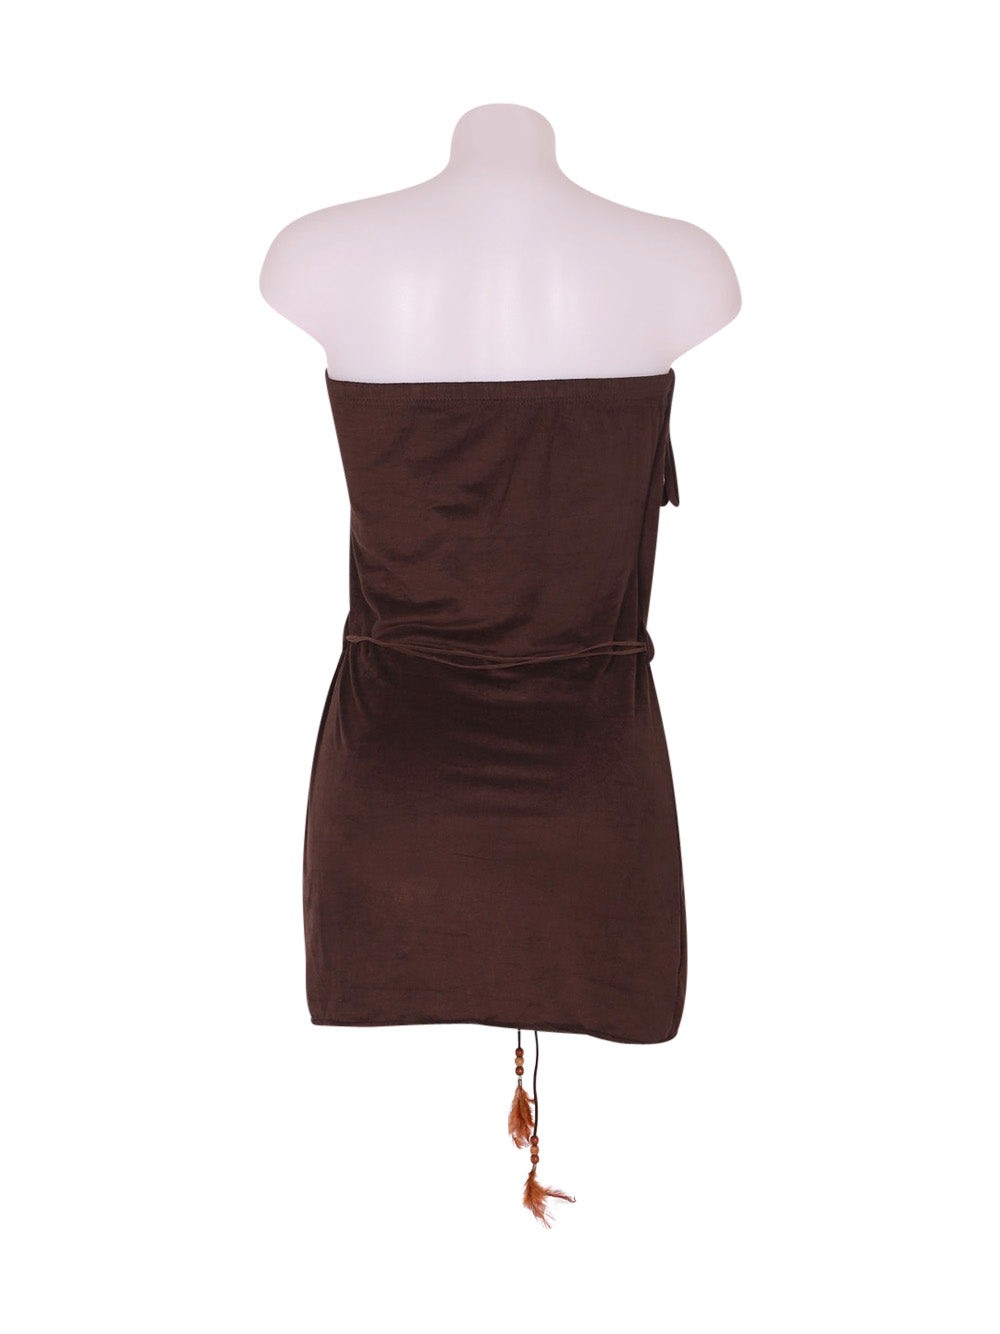 Back photo of Preloved unbra Brown Woman's dress - size 6/XS